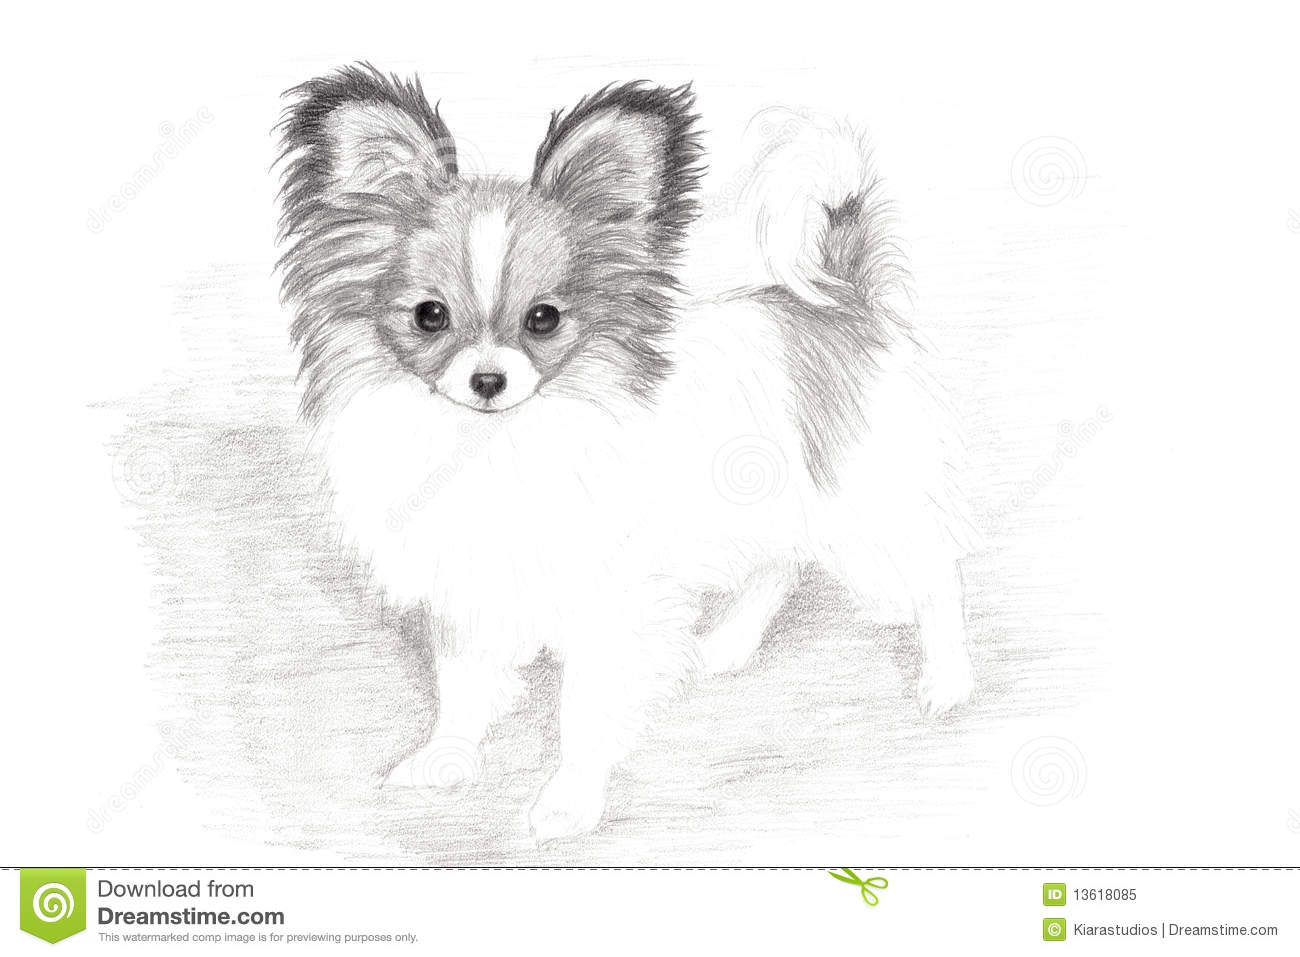 How To Draw Dogs Step By Step Video